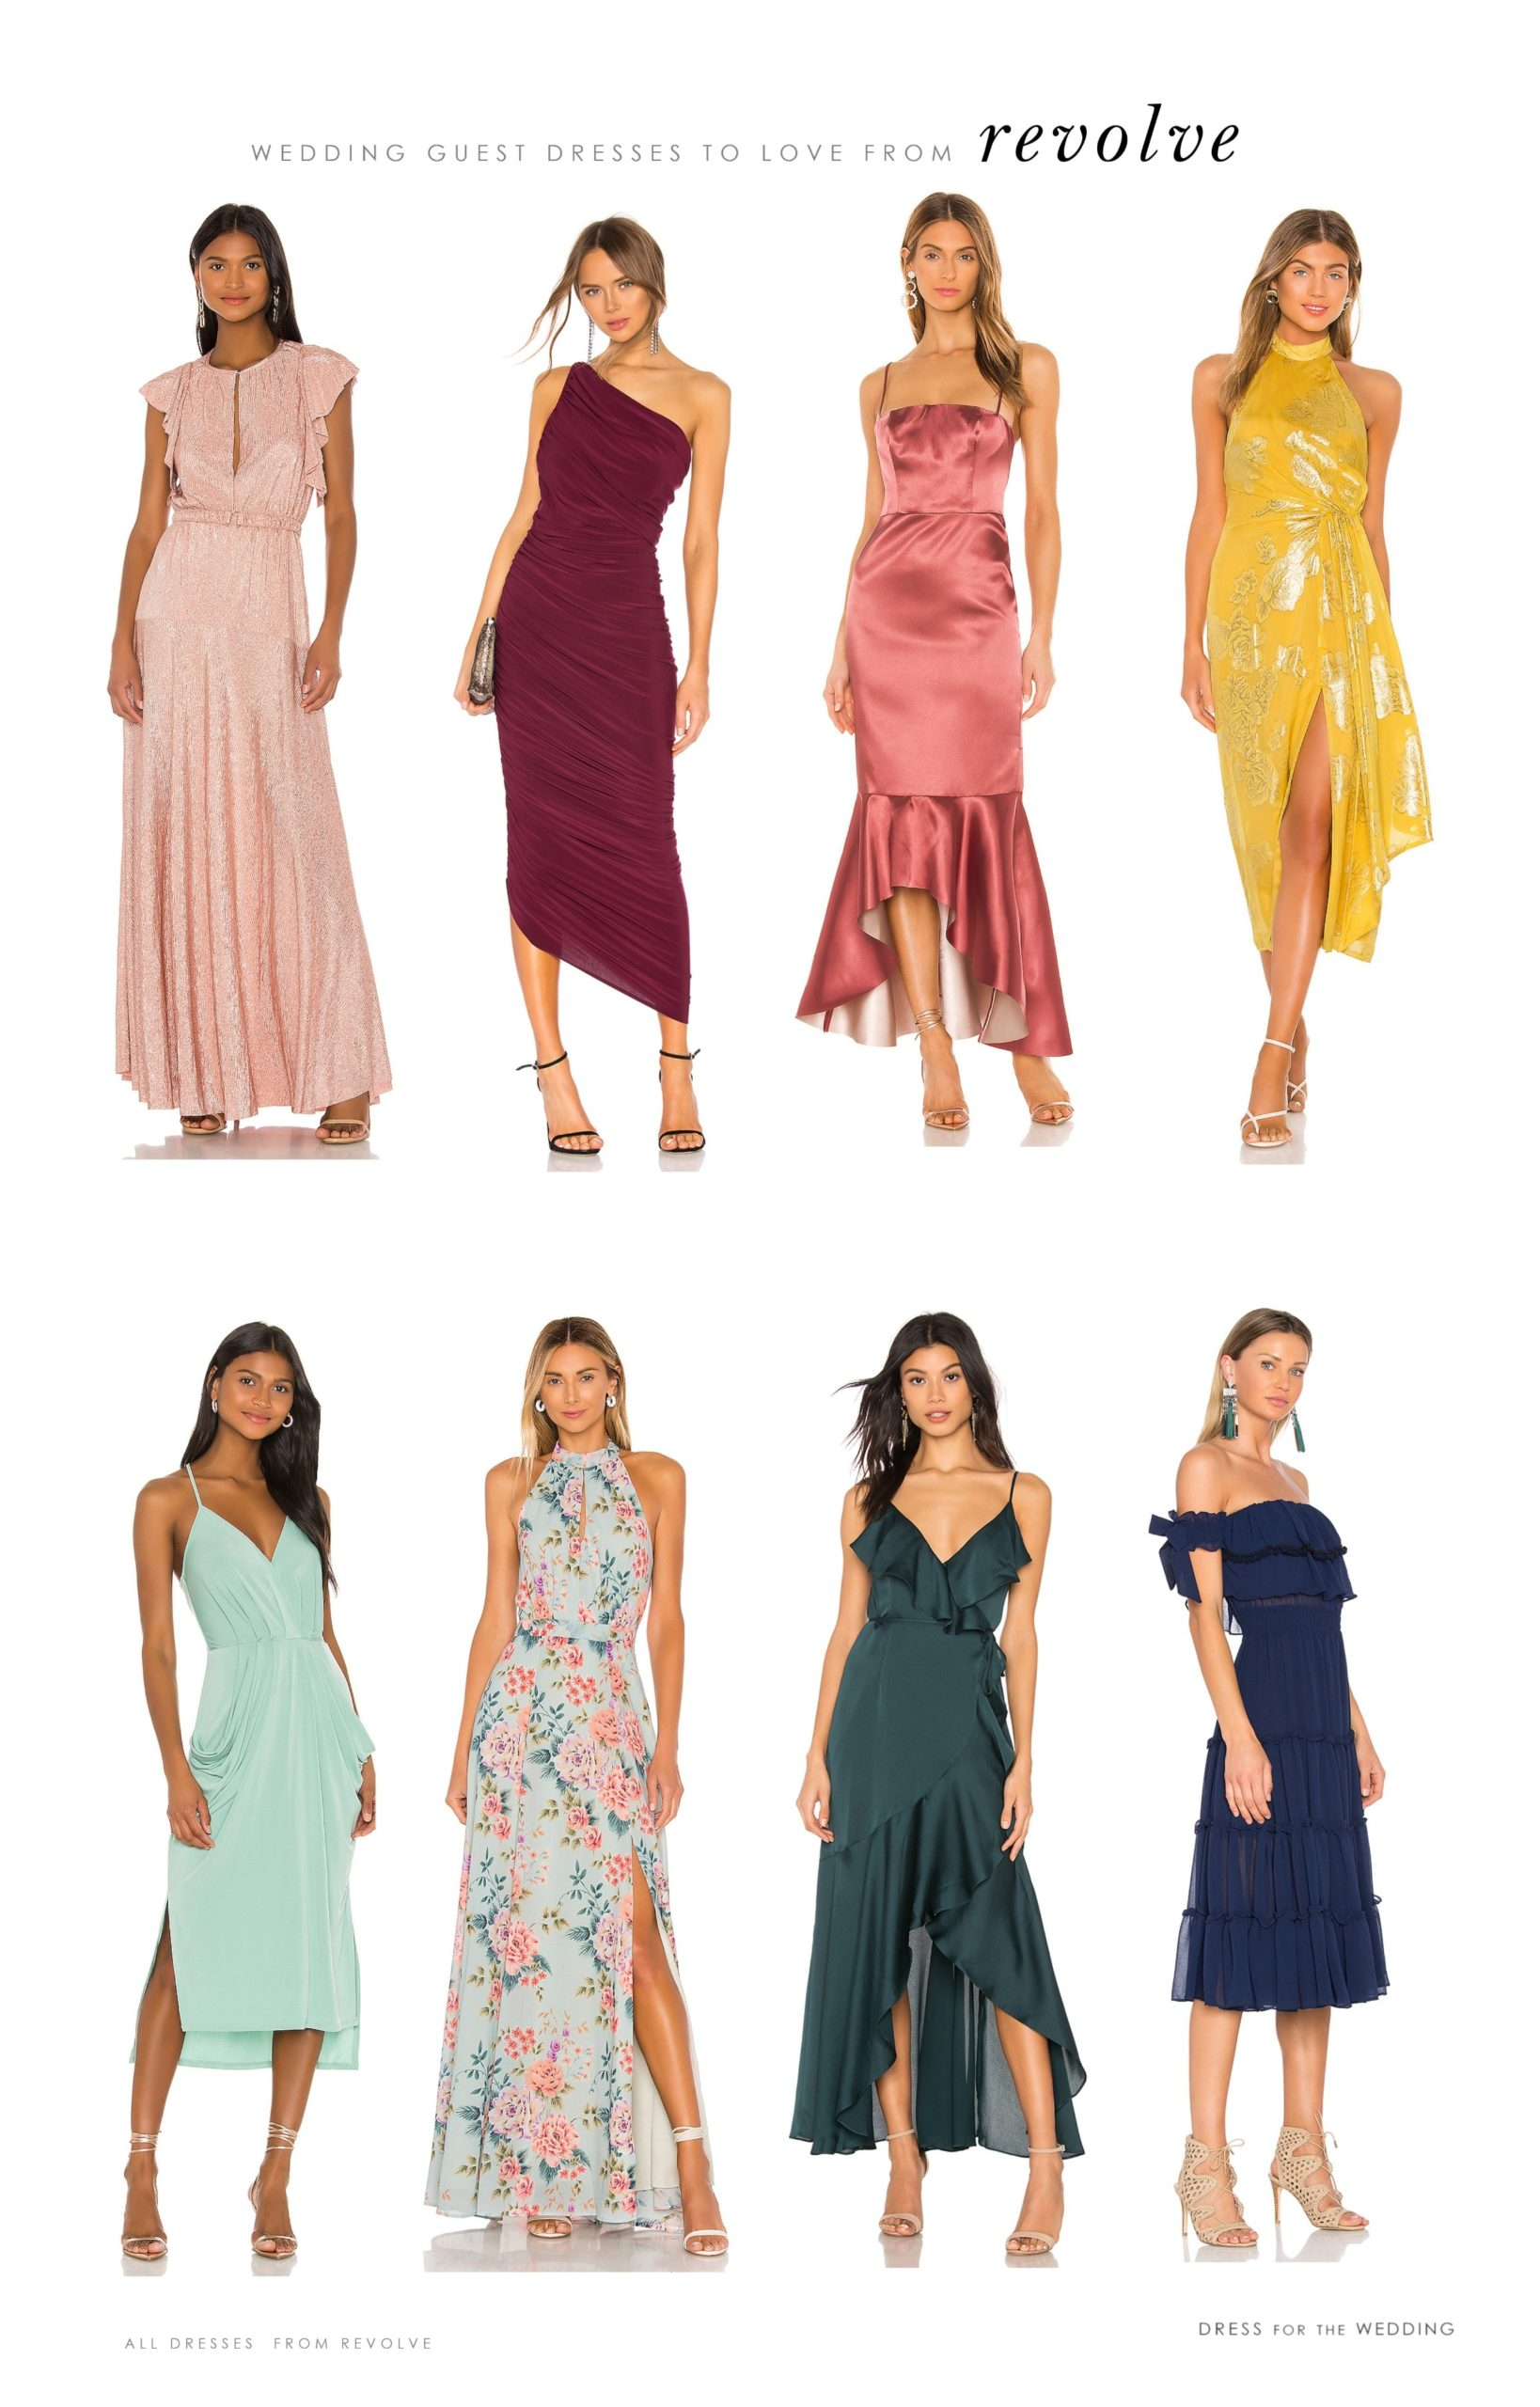 Dresses For Wedding Guests From Revolve Dress For The Wedding I explored all your posts. dresses for wedding guests from revolve